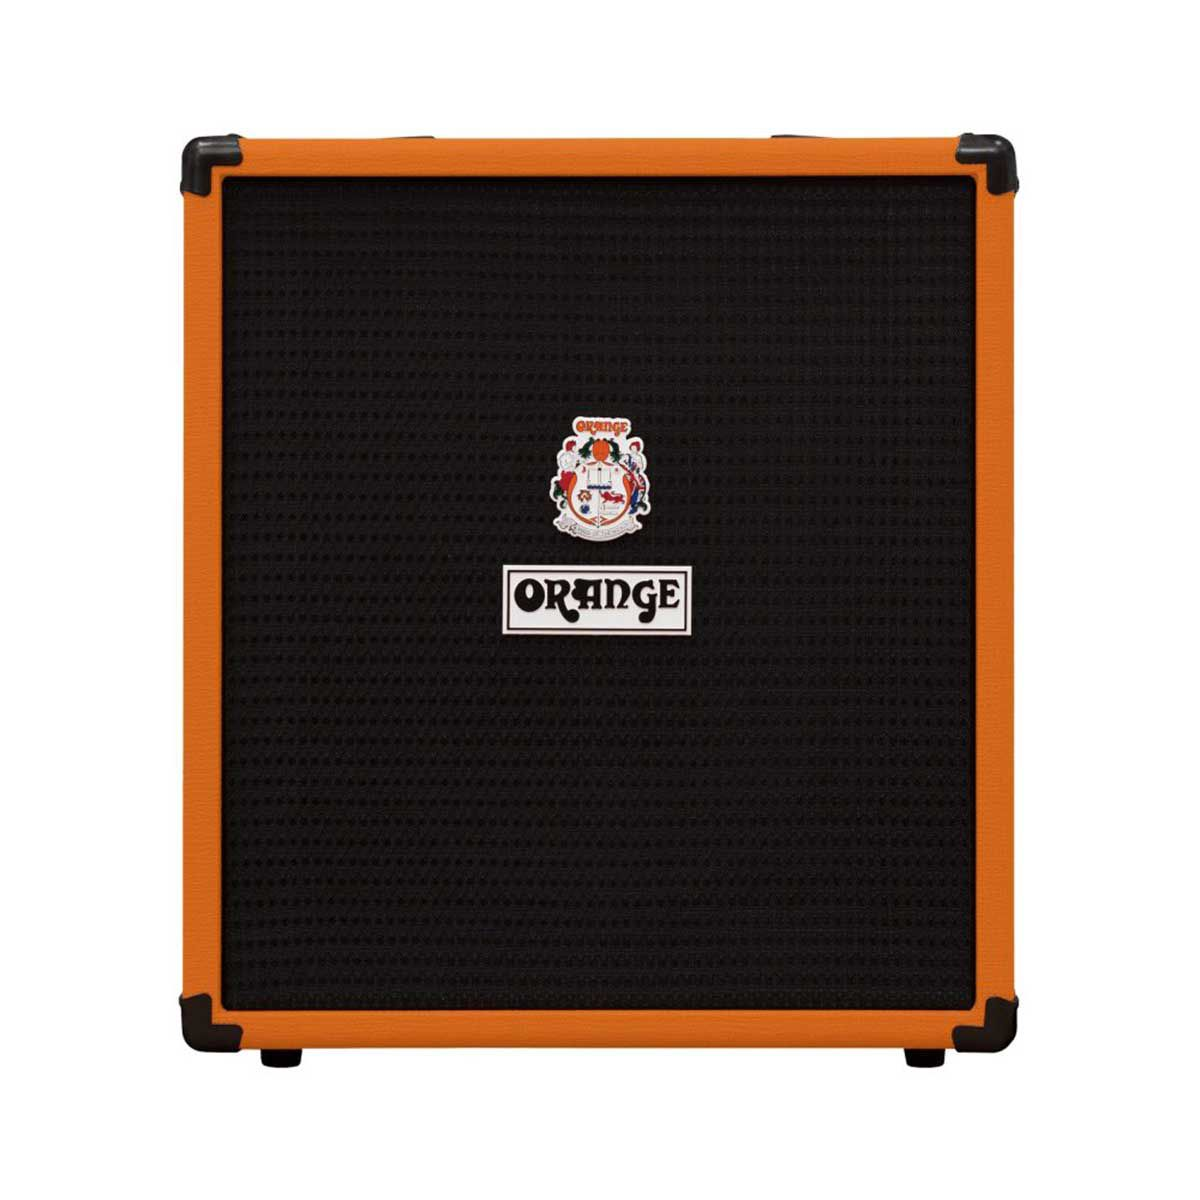 Caixa Amplificada Orange Crush Bass 50W para Contrabaixo